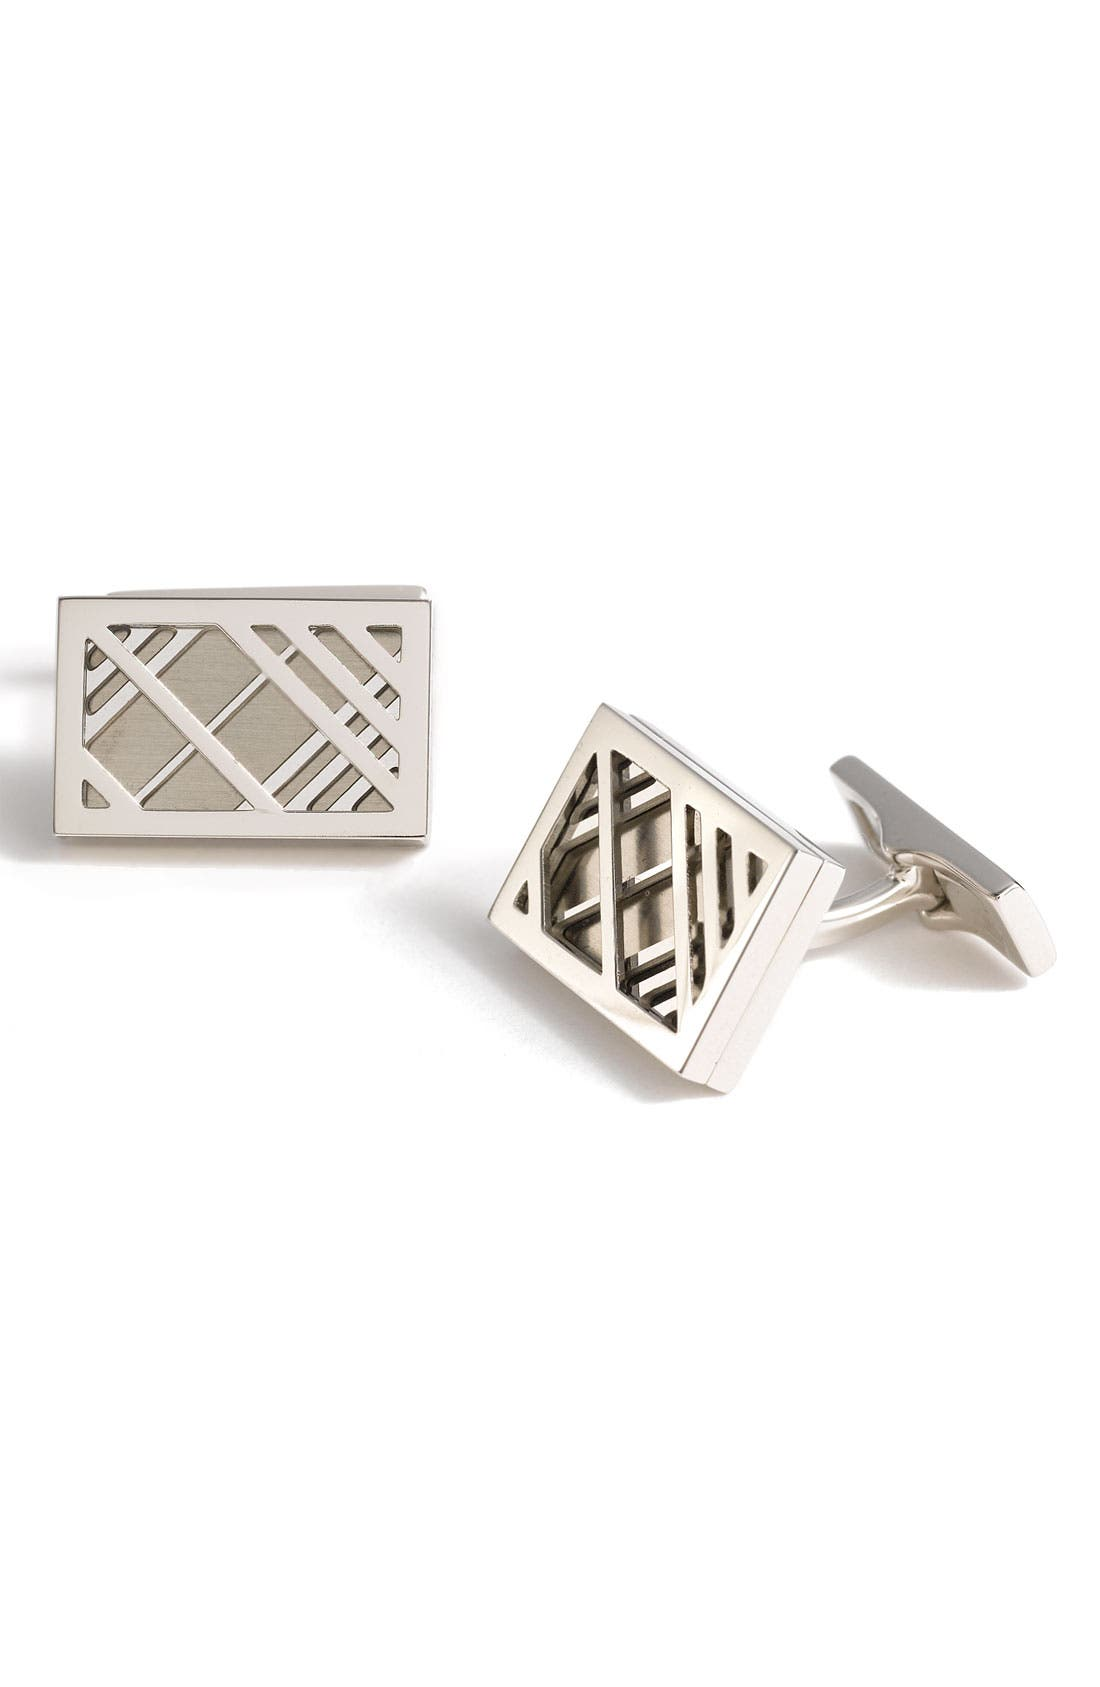 Main Image - Burberry Metal Check Cuff Links